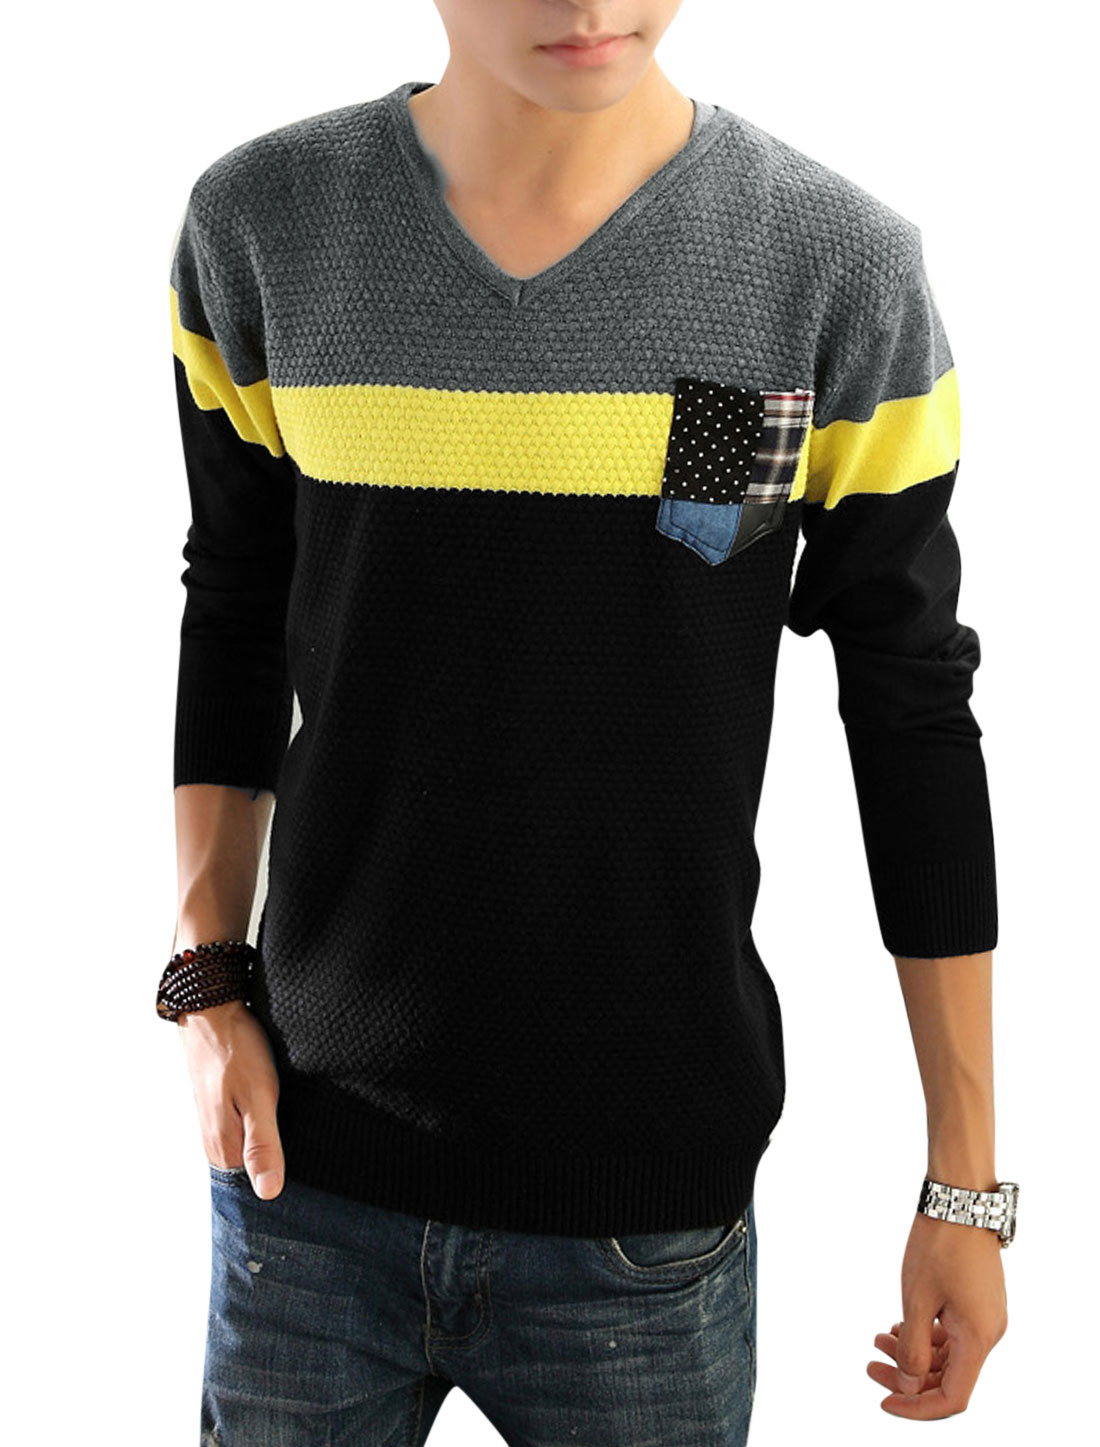 Men Contrast Color Chest Pocket Long Sleeve Knit Shirt Black Yellow S